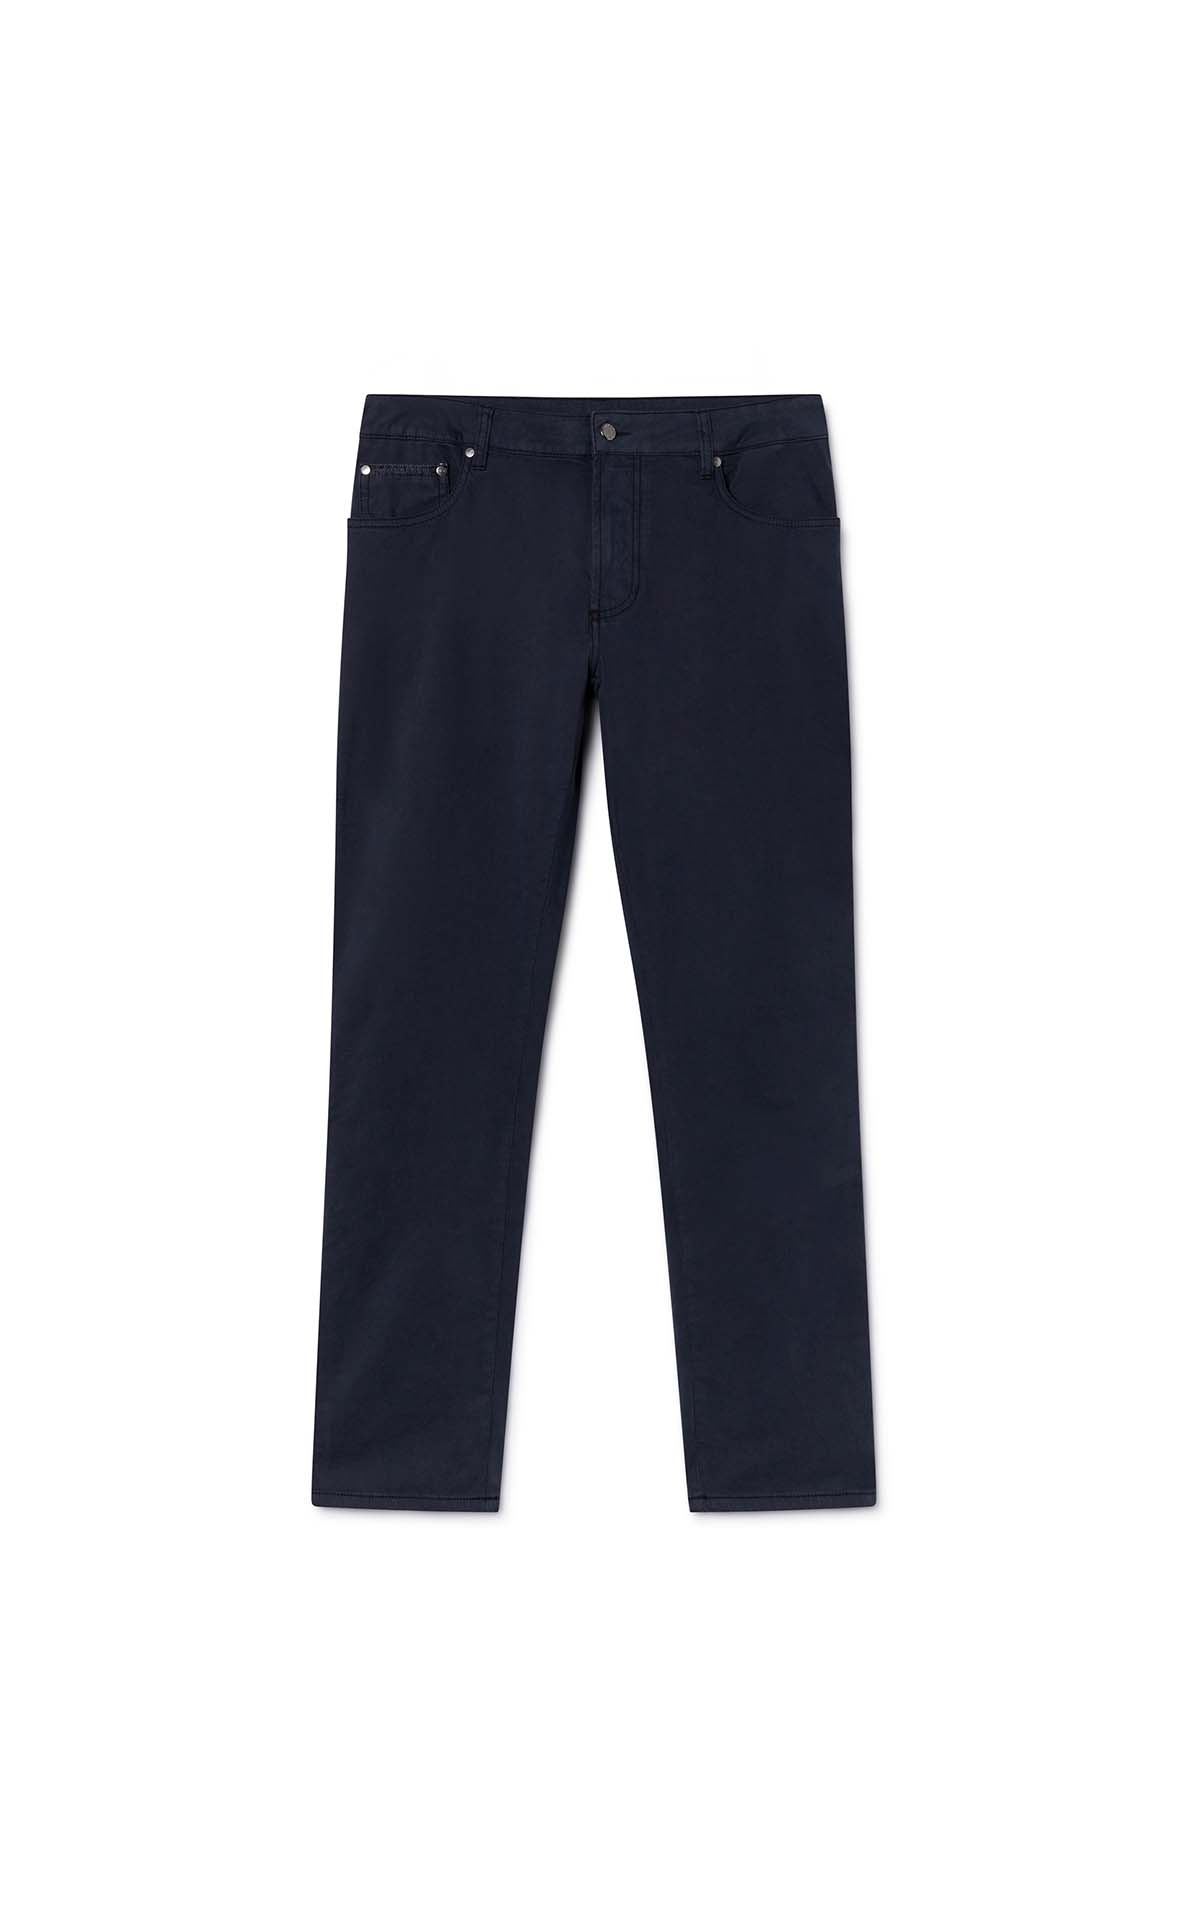 Hackett London trousers at The Bicester Village Shopping Collection